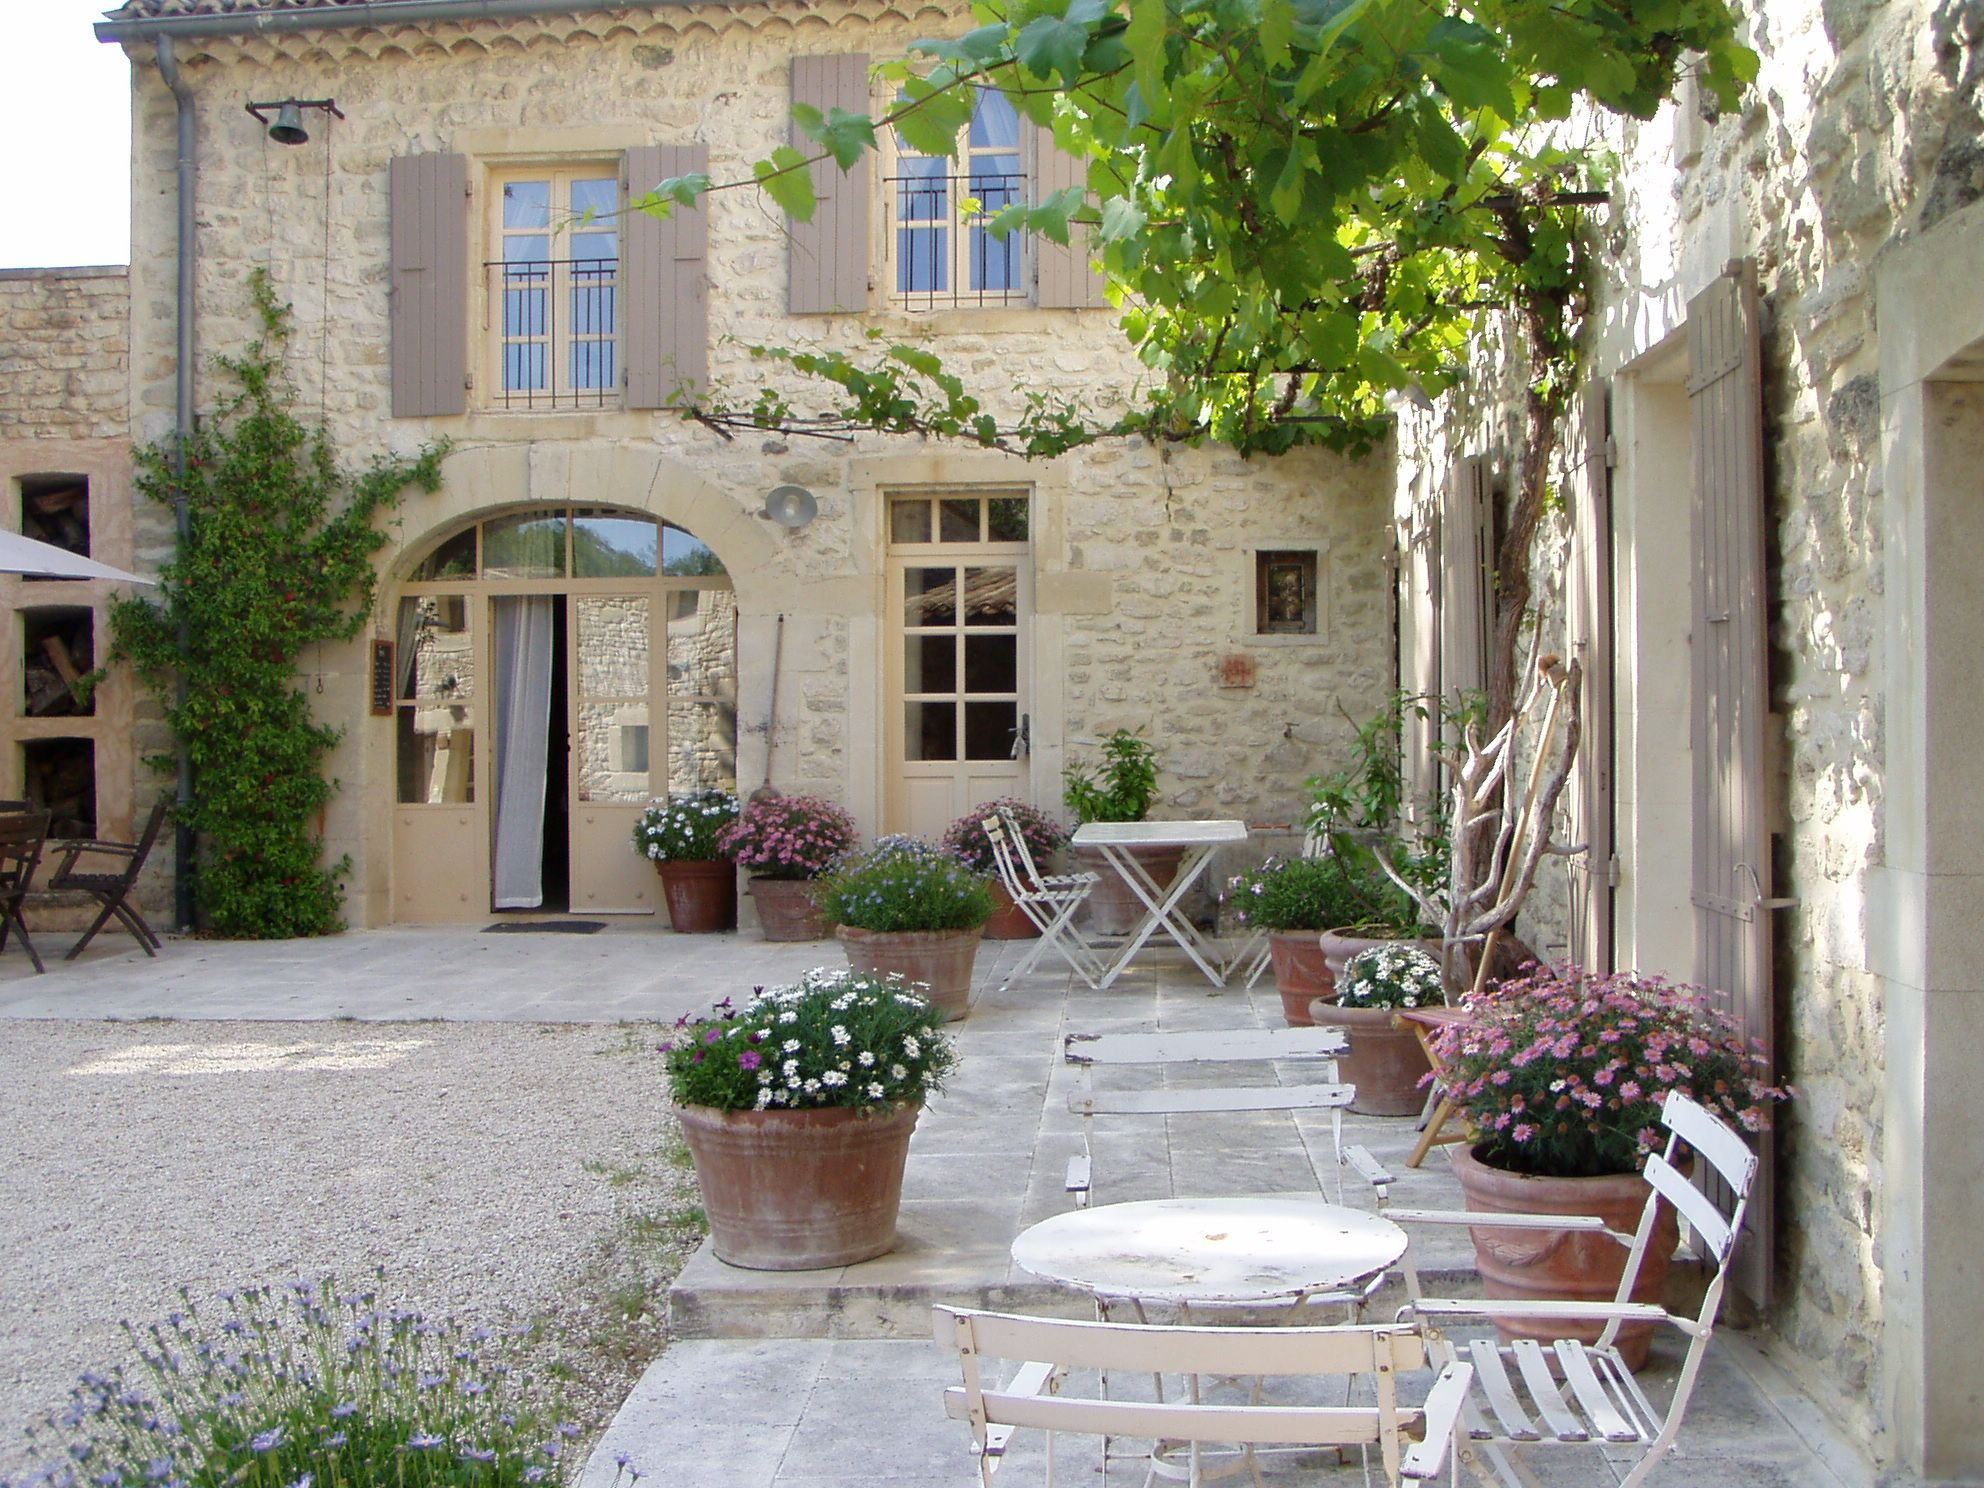 Lady jill mueller courtyards pinterest provence for Maison de provence decoration